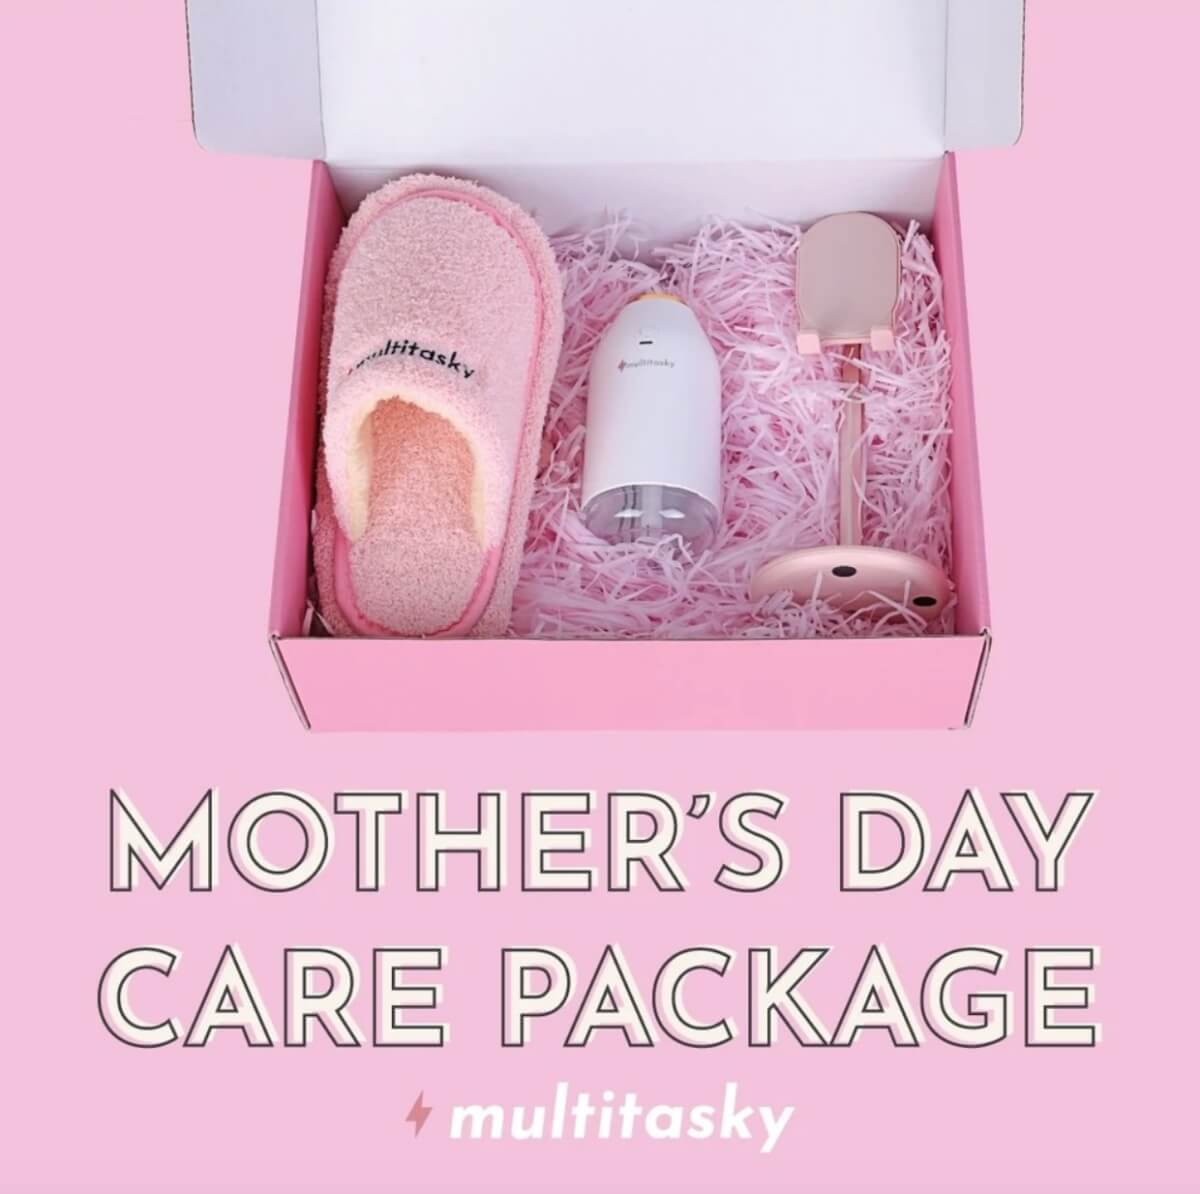 multitasky mothers day care package